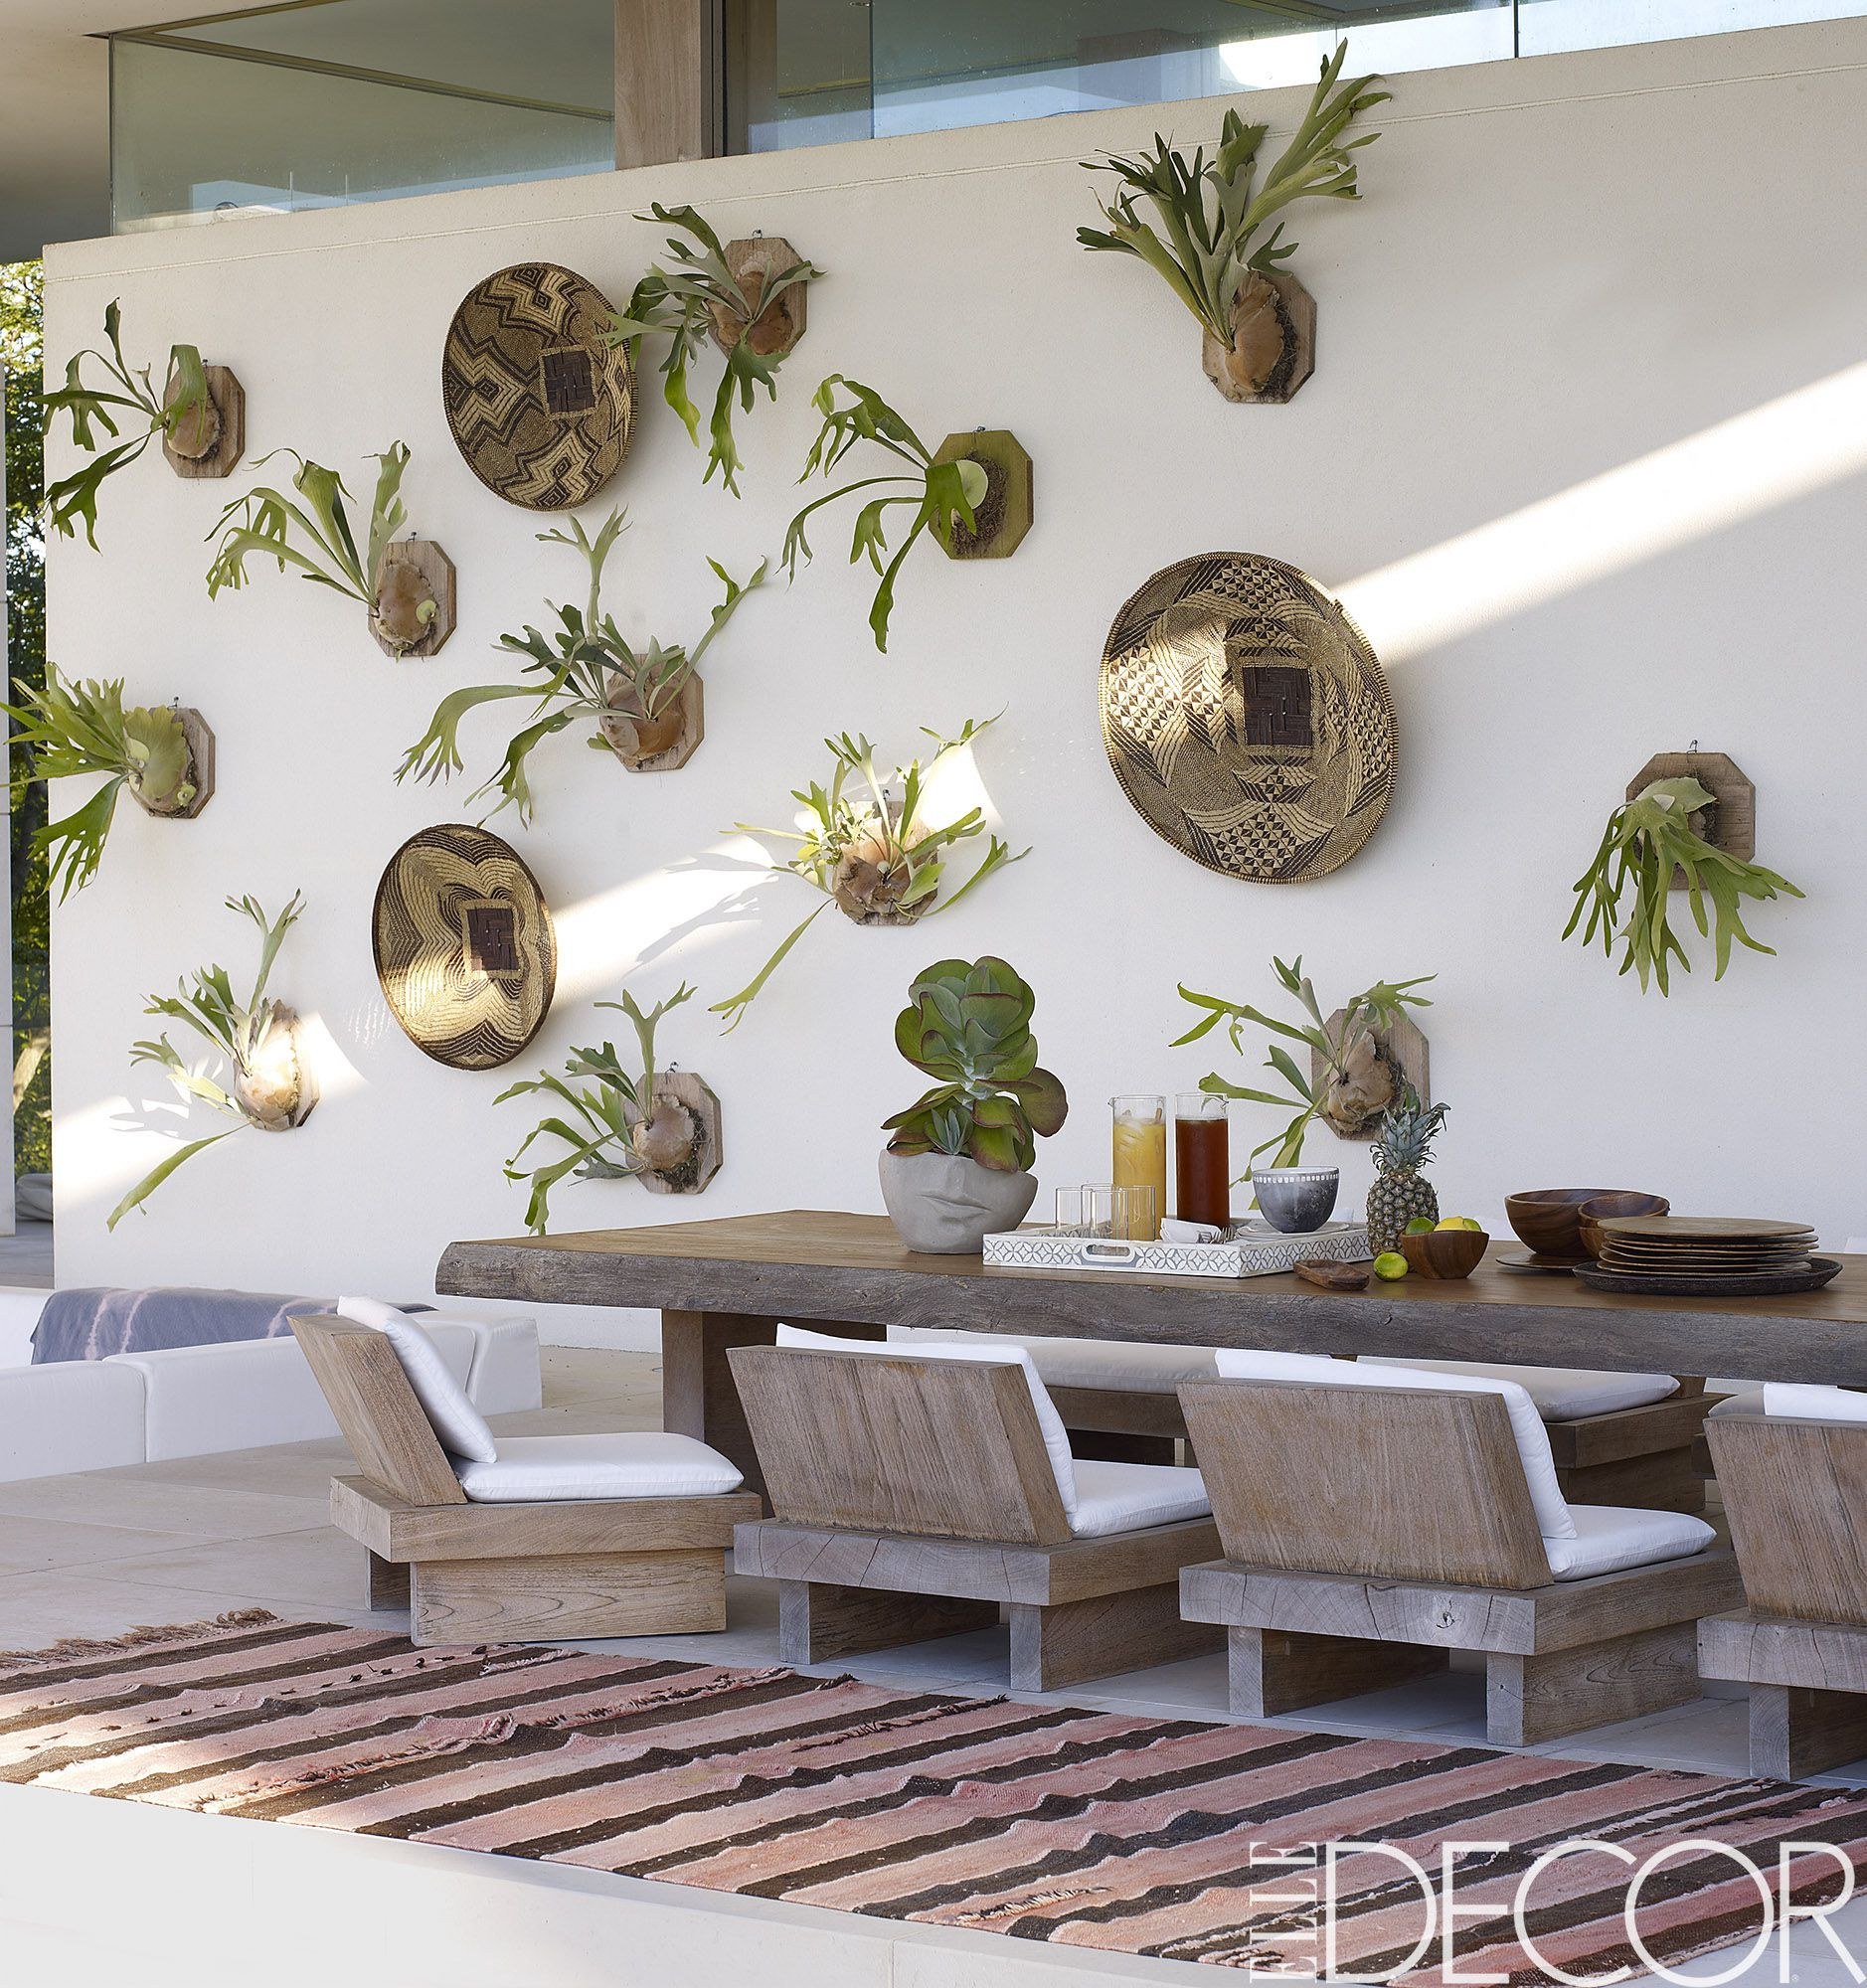 Small space patio furniture Cozy Image Chiradinfo 40 Best Small Patio Ideas Small Patio Furniture Design